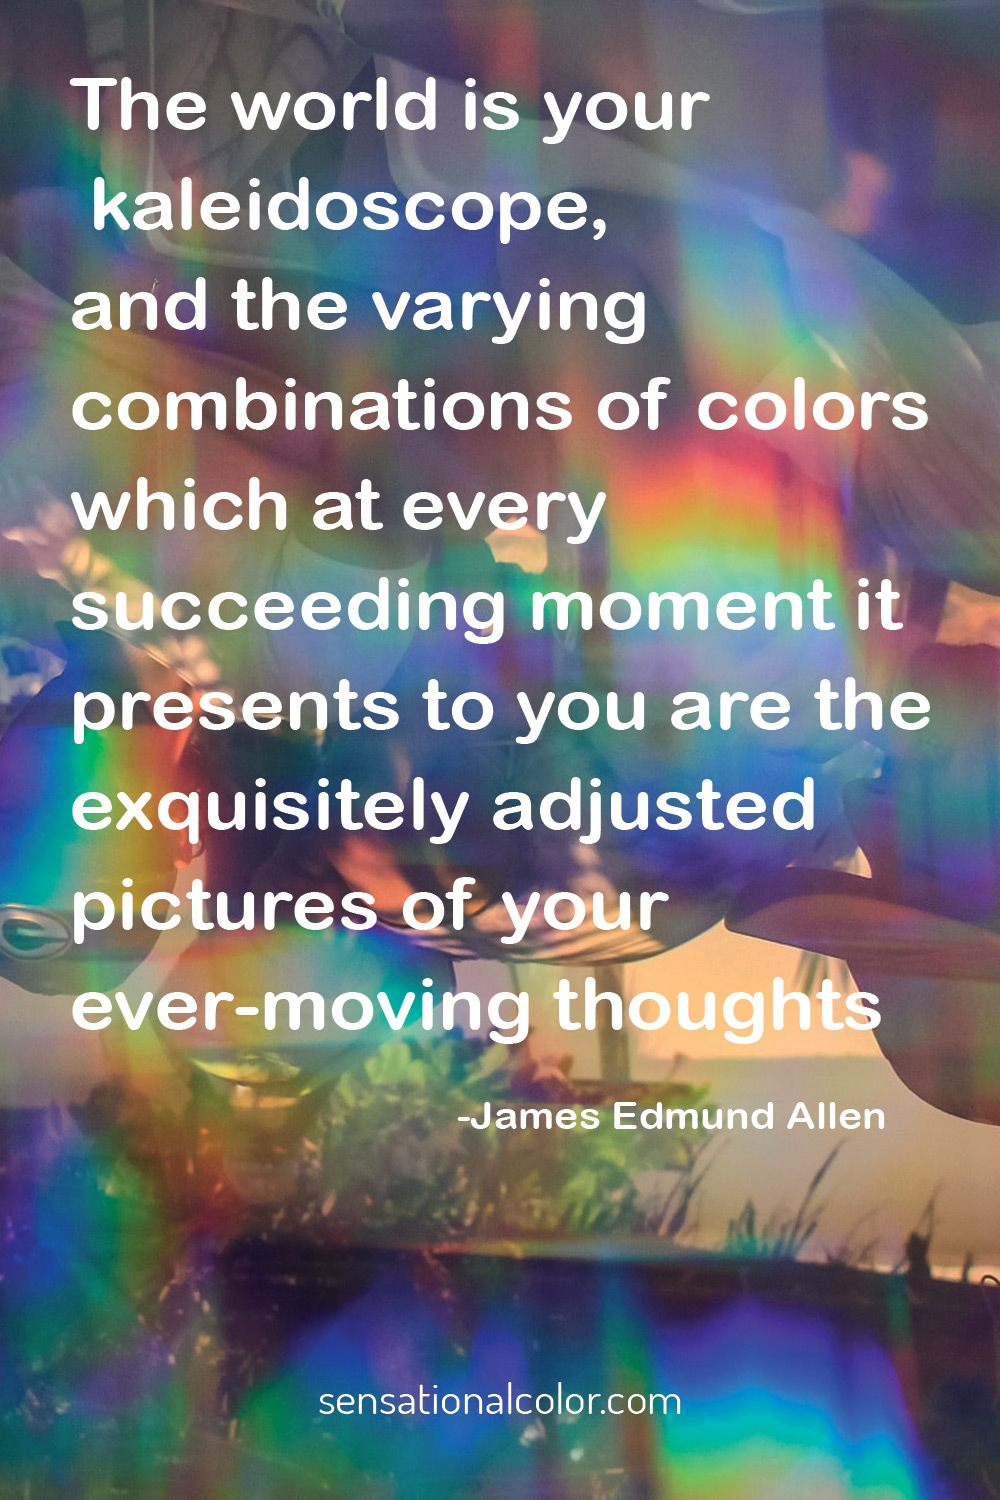 """The world is your kaleidoscope, and the varying combinations of colors...""-James Edmund Allen Quote"